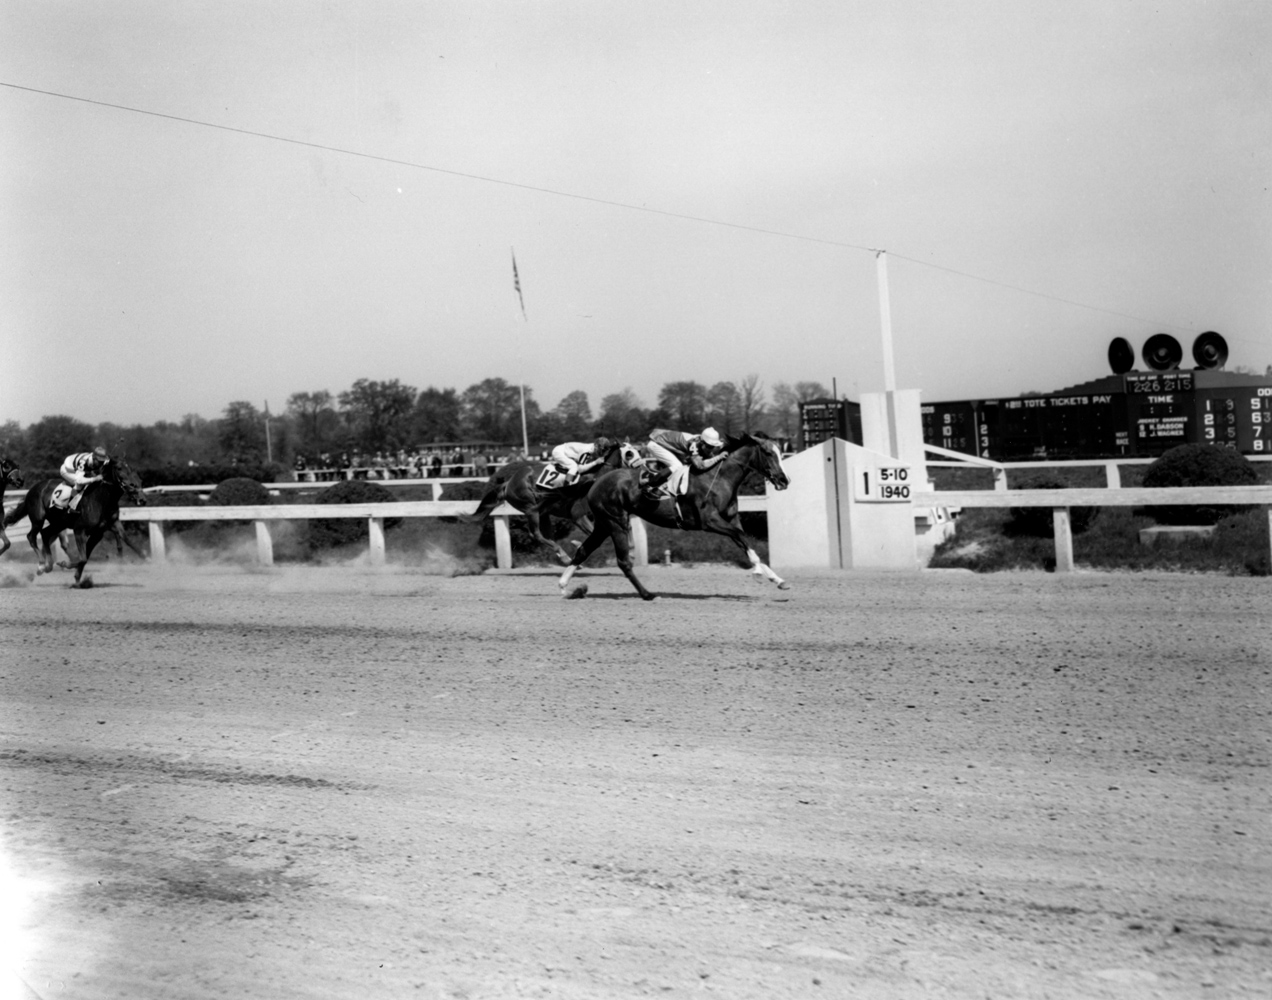 Ralph Neves and Sun Ginger winning a race at Pimlico, May 1940 (Keeneland Library Morgan Collection/Museum Collection)